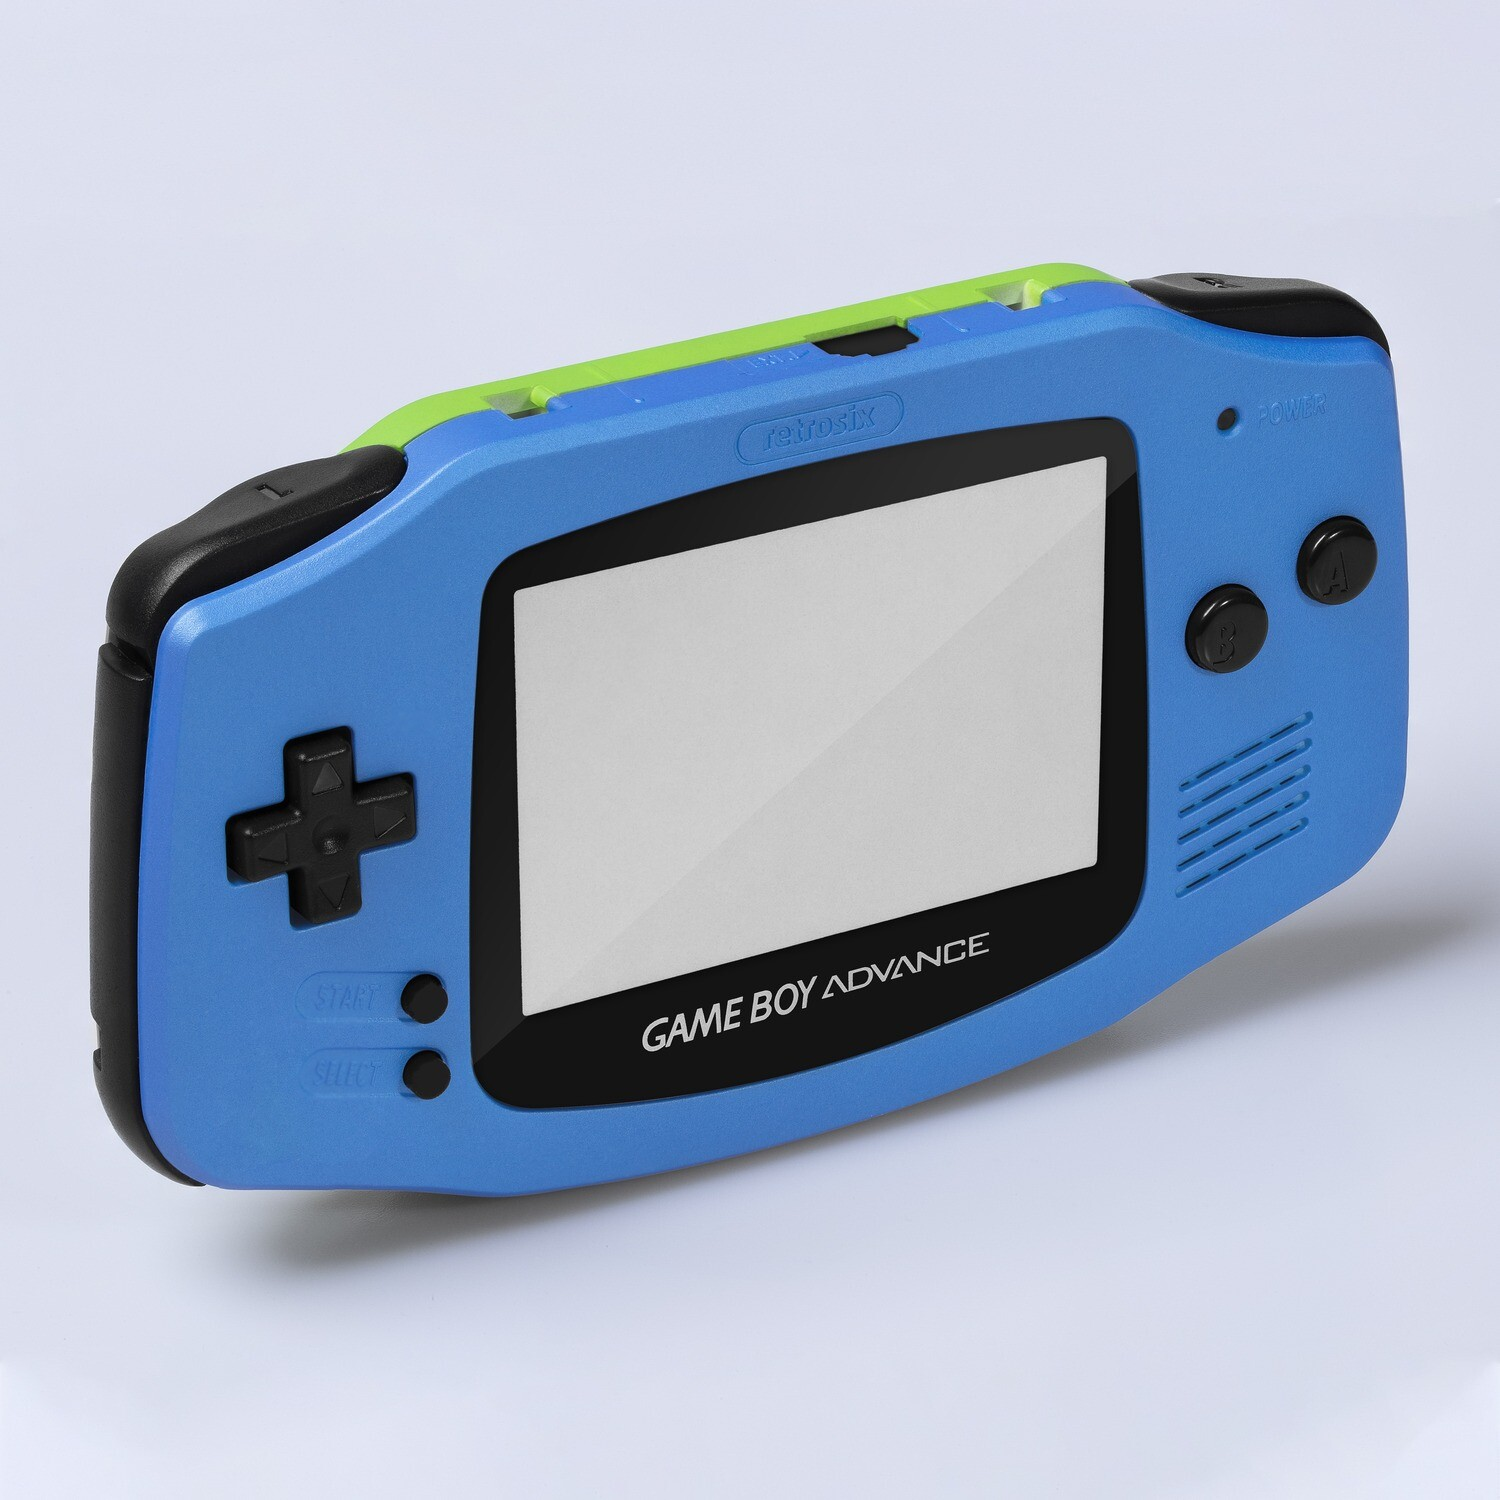 Game Boy Advance IPS USB-C Shell Kit (Pearl Blue/Green)